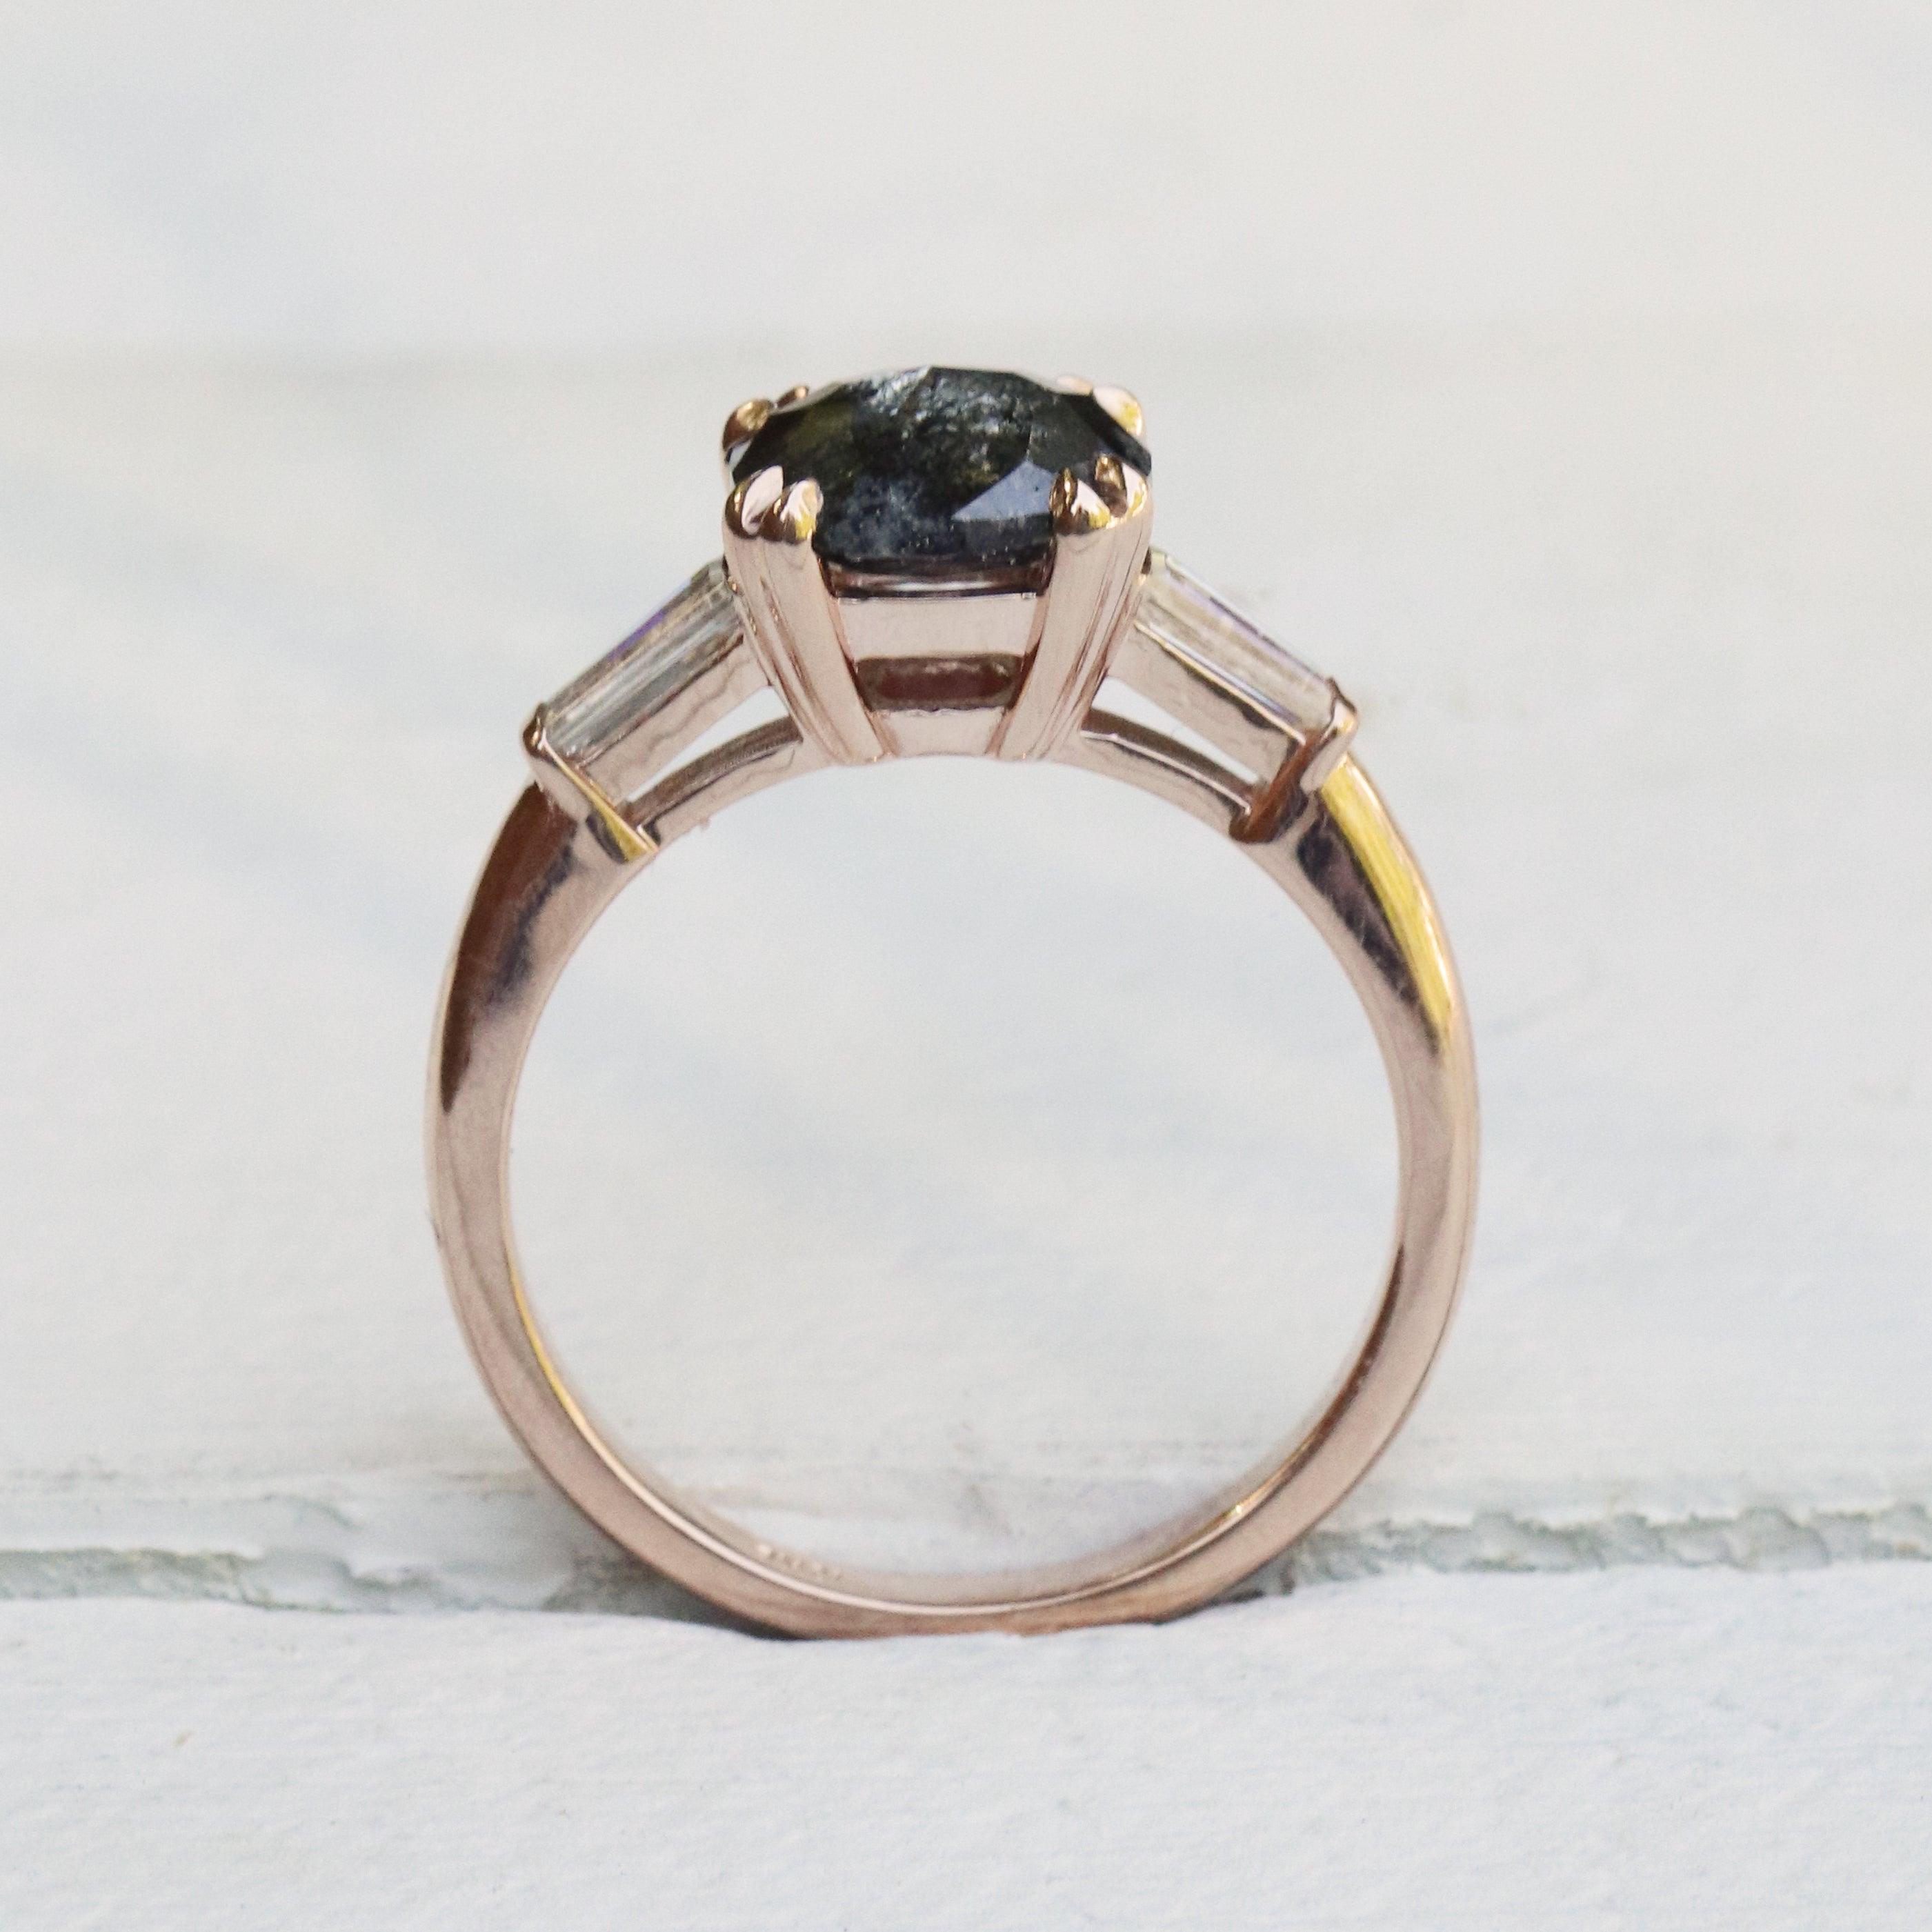 samantha - Mali ring with 2.3 carat Celestial Diamond and Moissanite Baguettes in 10k Rose Gold - Ready to Size and Ship - Salt & Pepper Celestial Diamond Engagement Rings and Wedding Bands  by Midwinter Co.